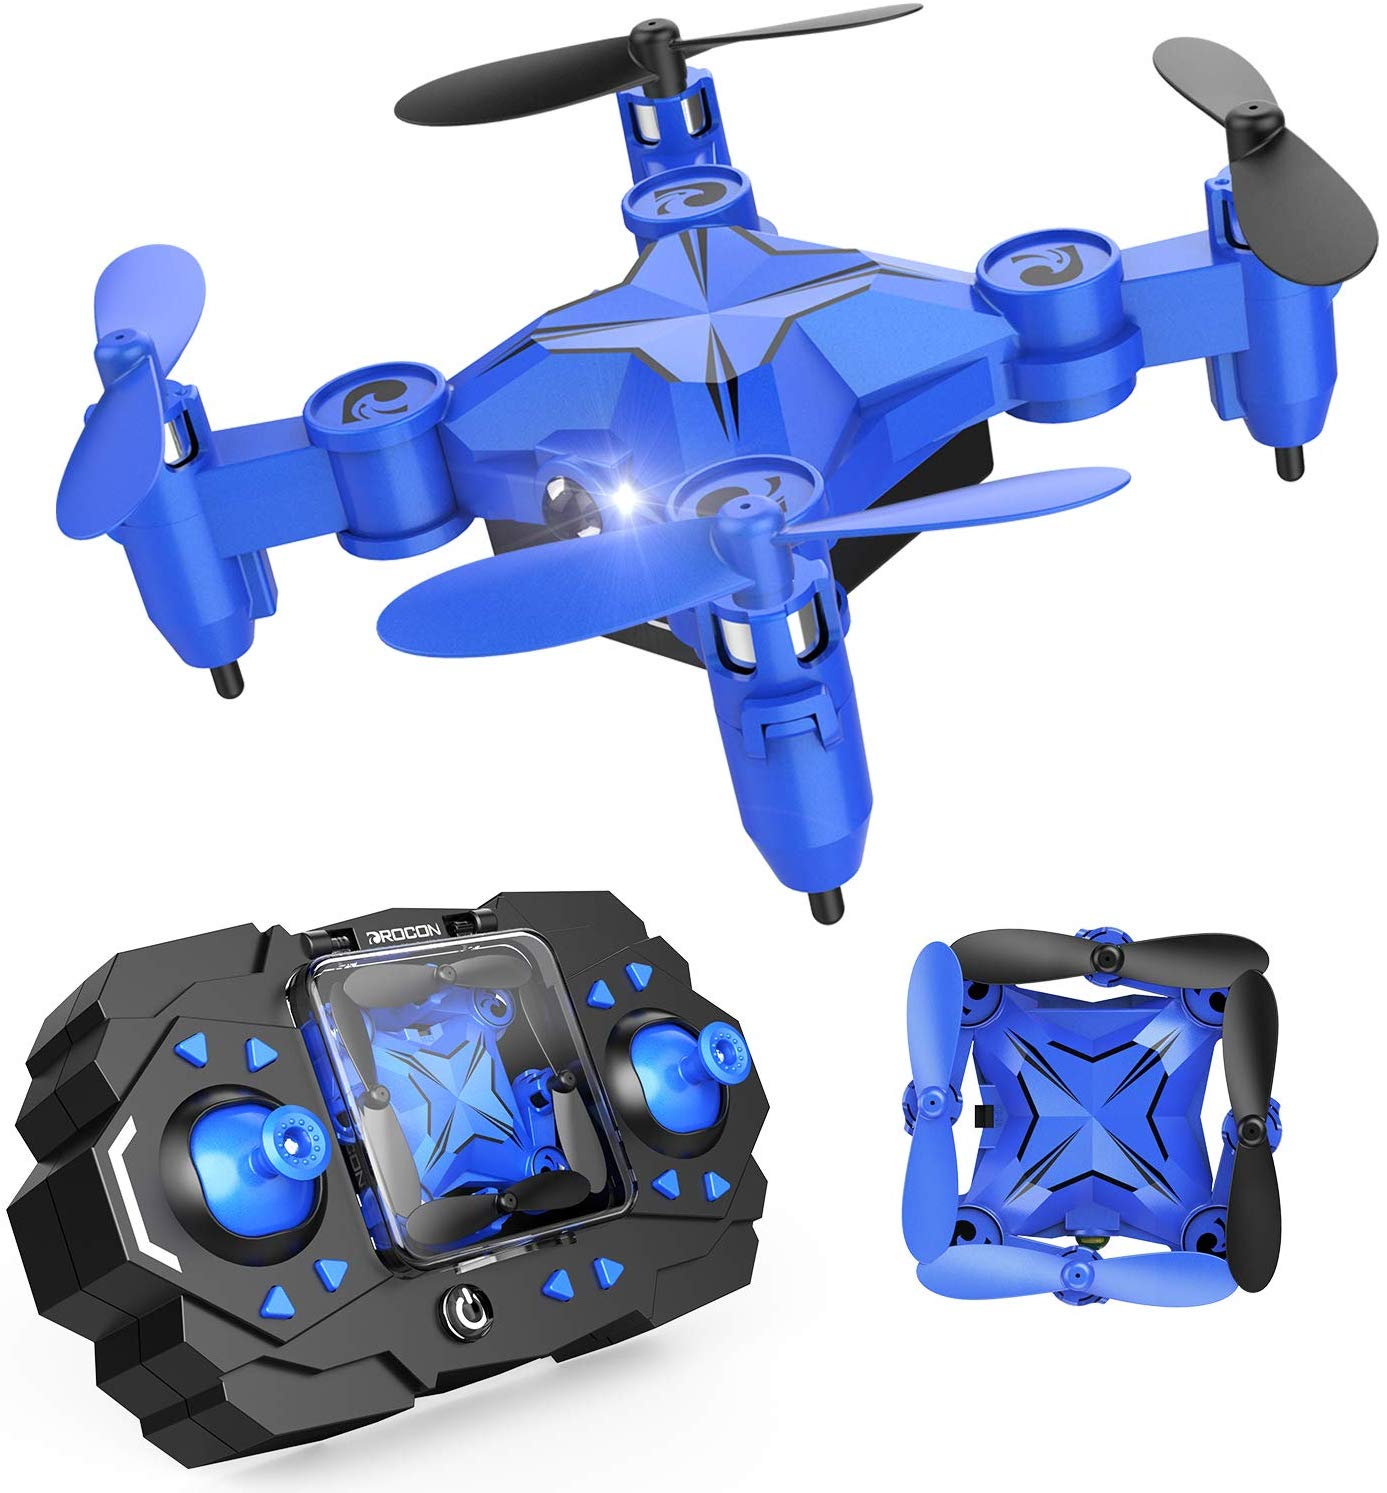 DROCON Mini Drone for Kids and Beginners, Foldable Mini RC Helicopter Quadcopter